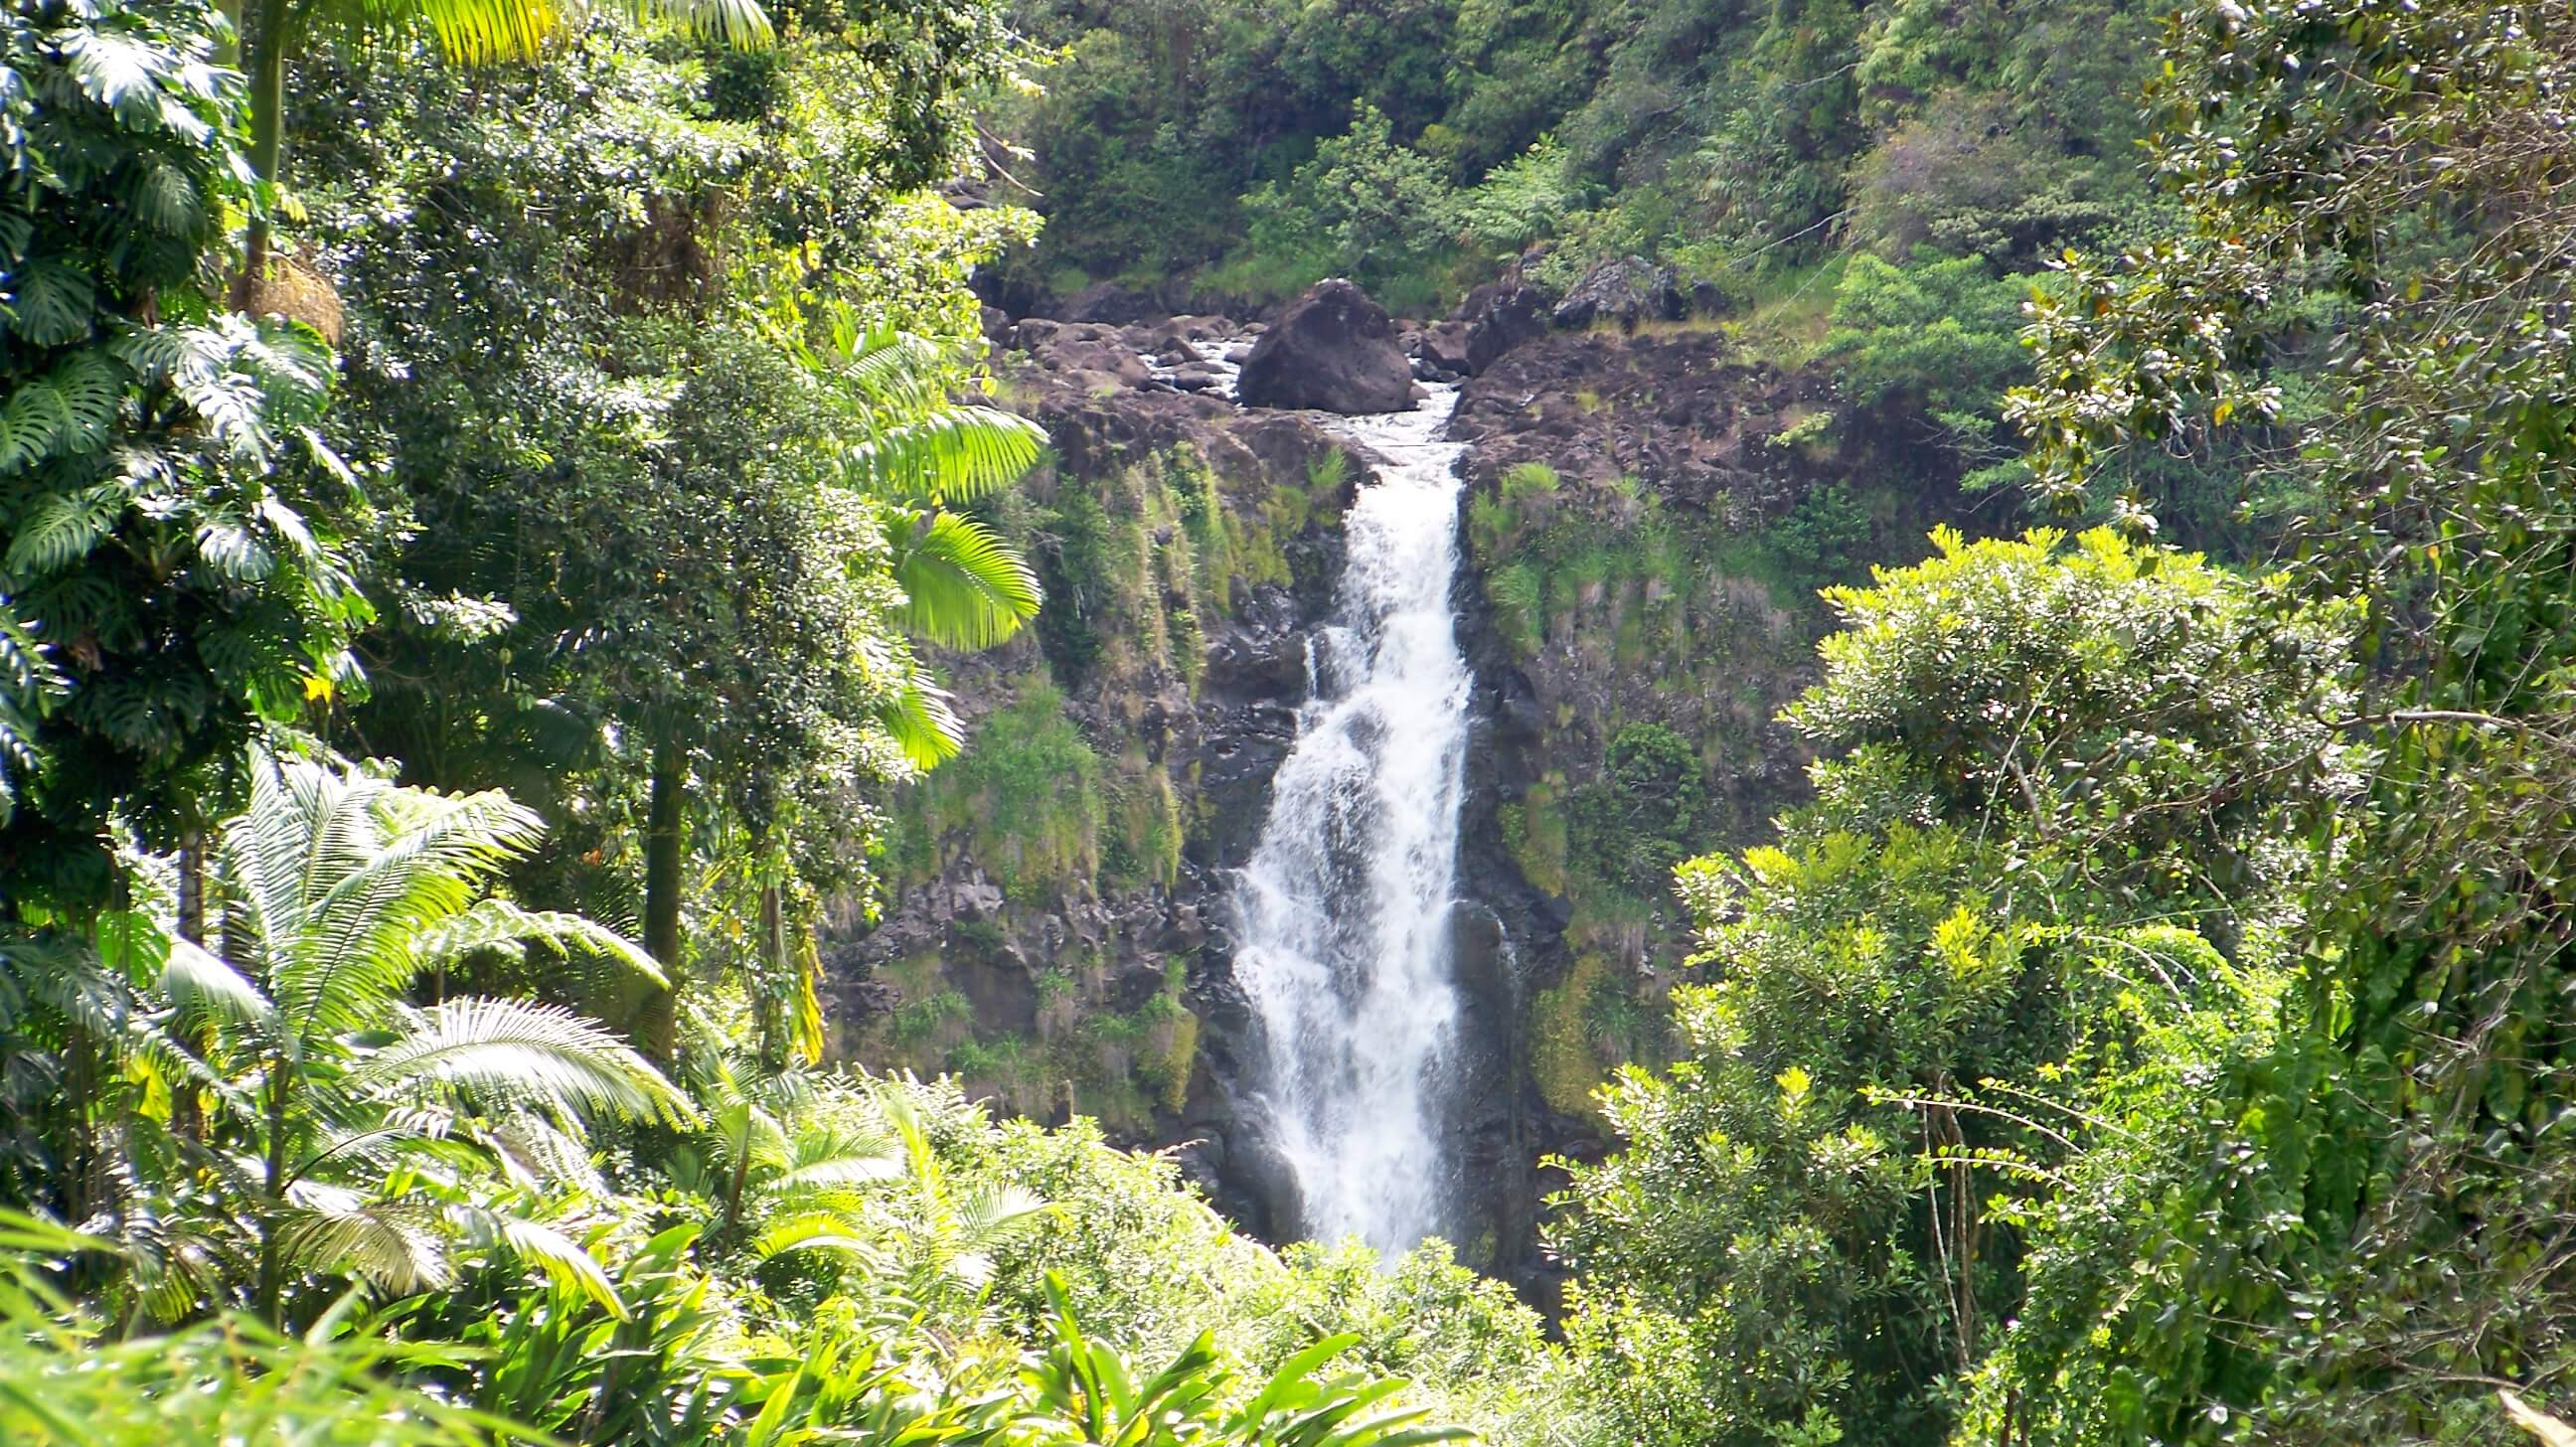 Kahuna Falls in Hawaii. Flickr User Colonel Max